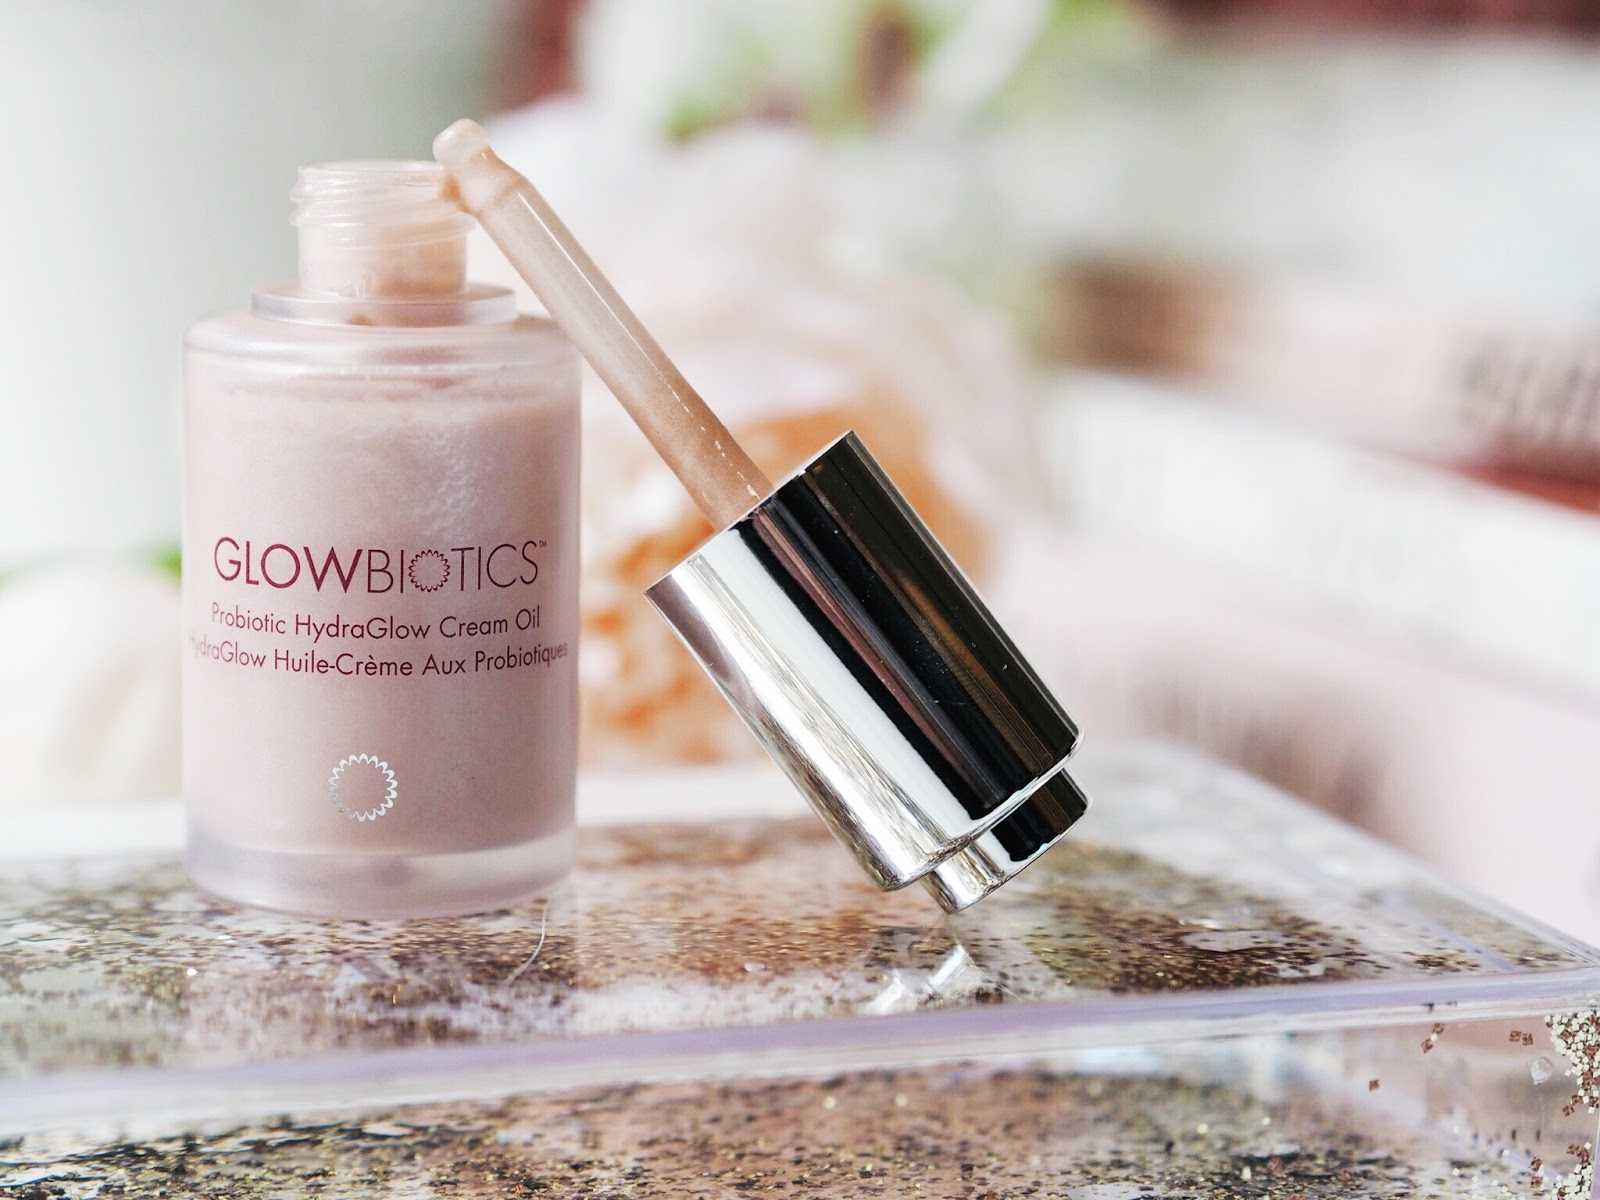 Glowbiotics probiotic hydraglow cream oil review